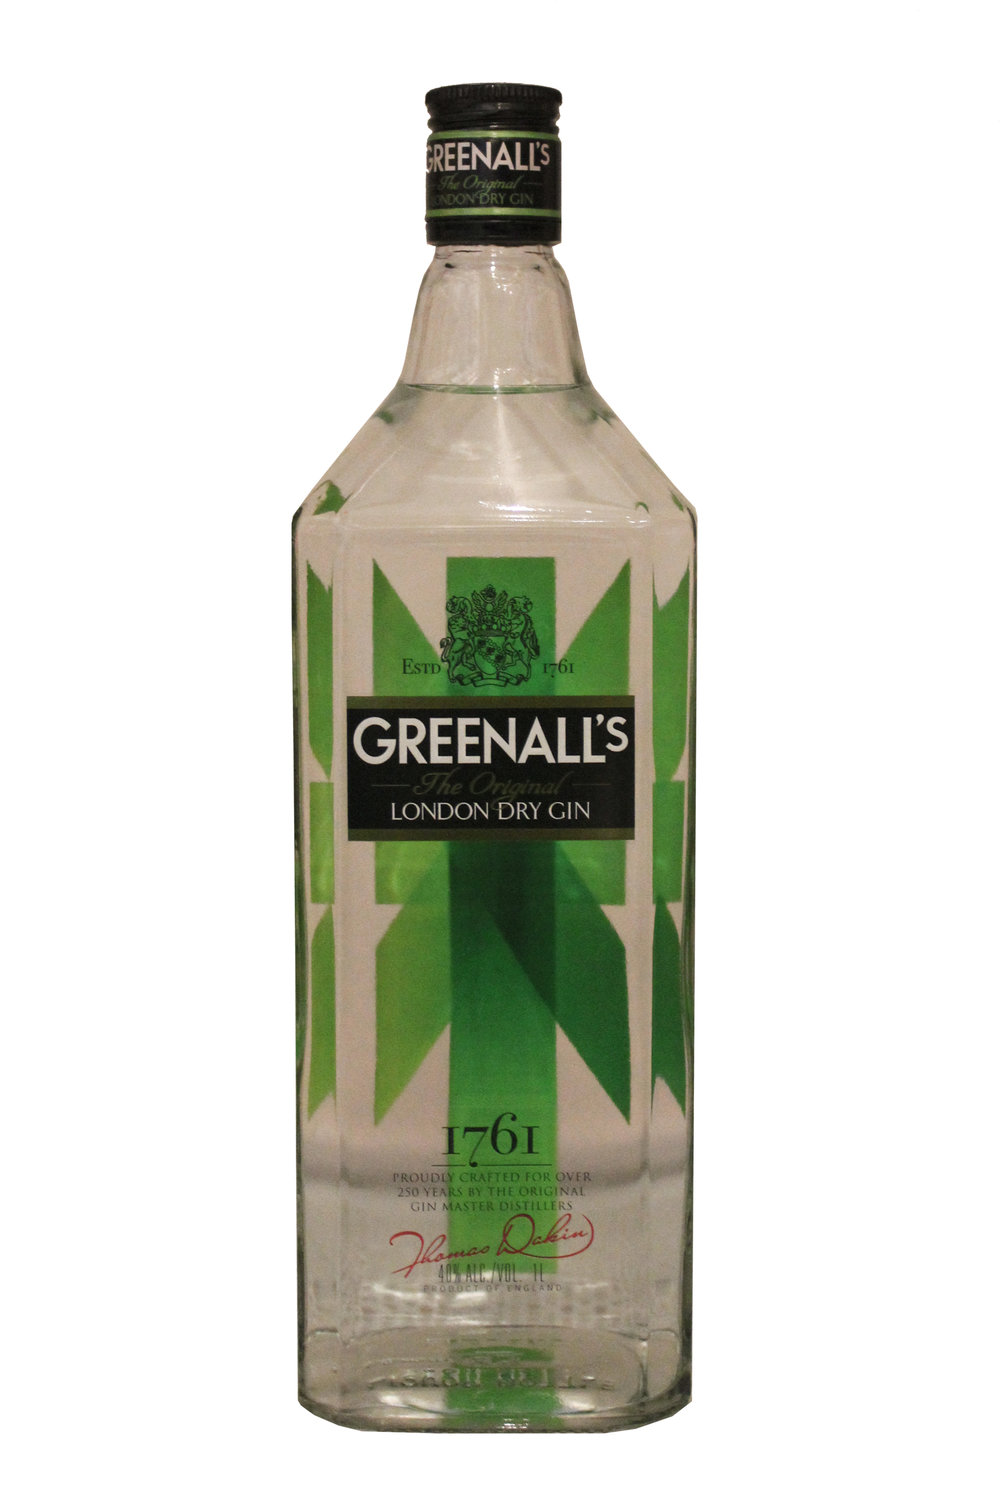 London Dry Gin Greenall's, England